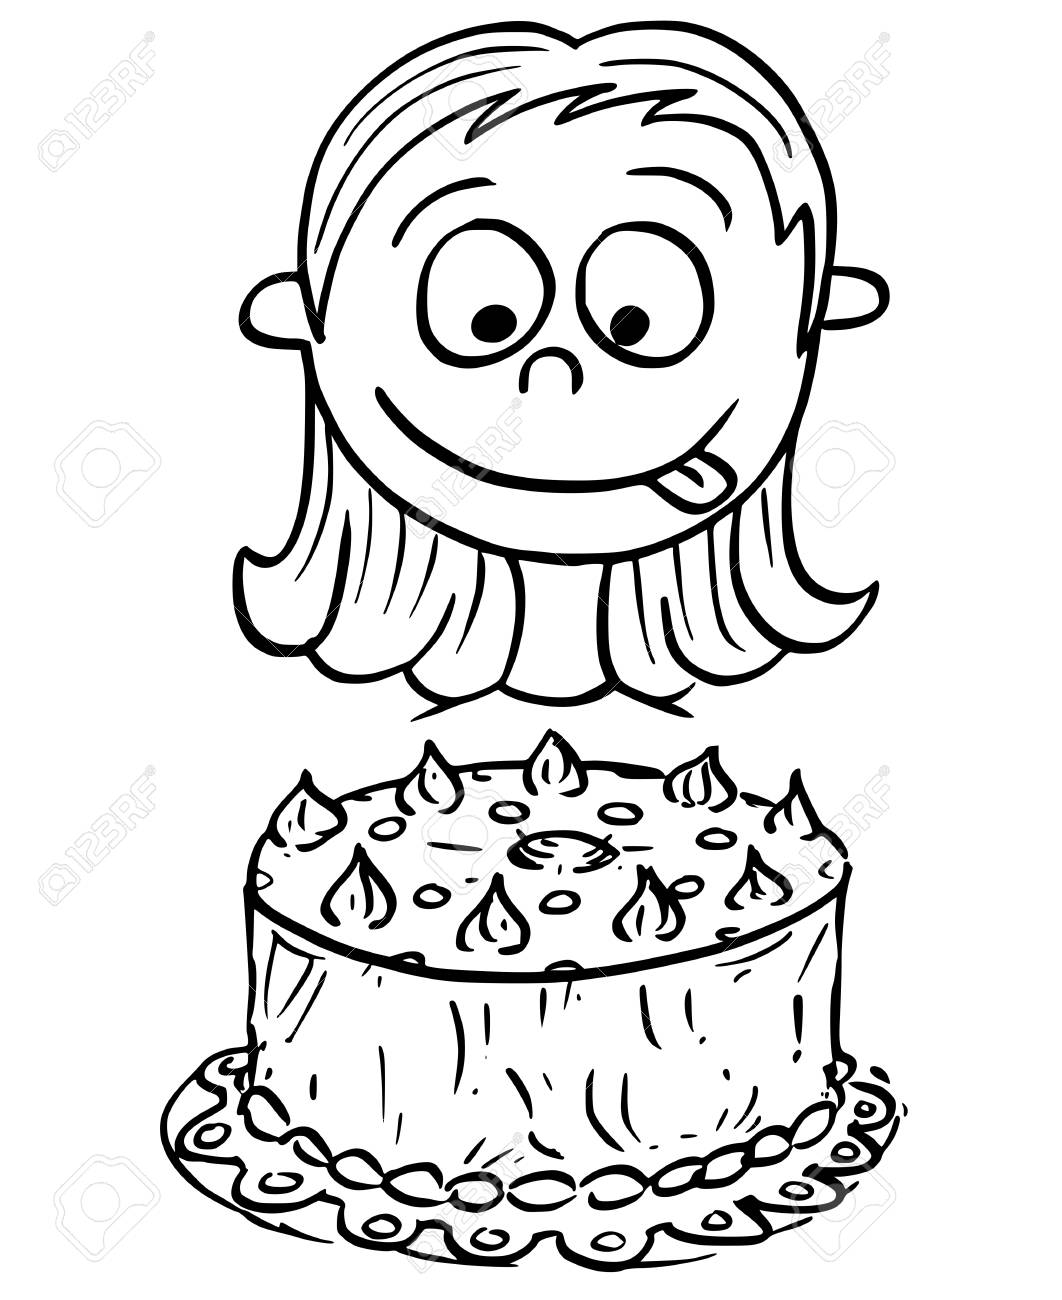 Fabulous Hand Drawing Cartoon Vector Illustration Of Girl Looking At Personalised Birthday Cards Sponlily Jamesorg